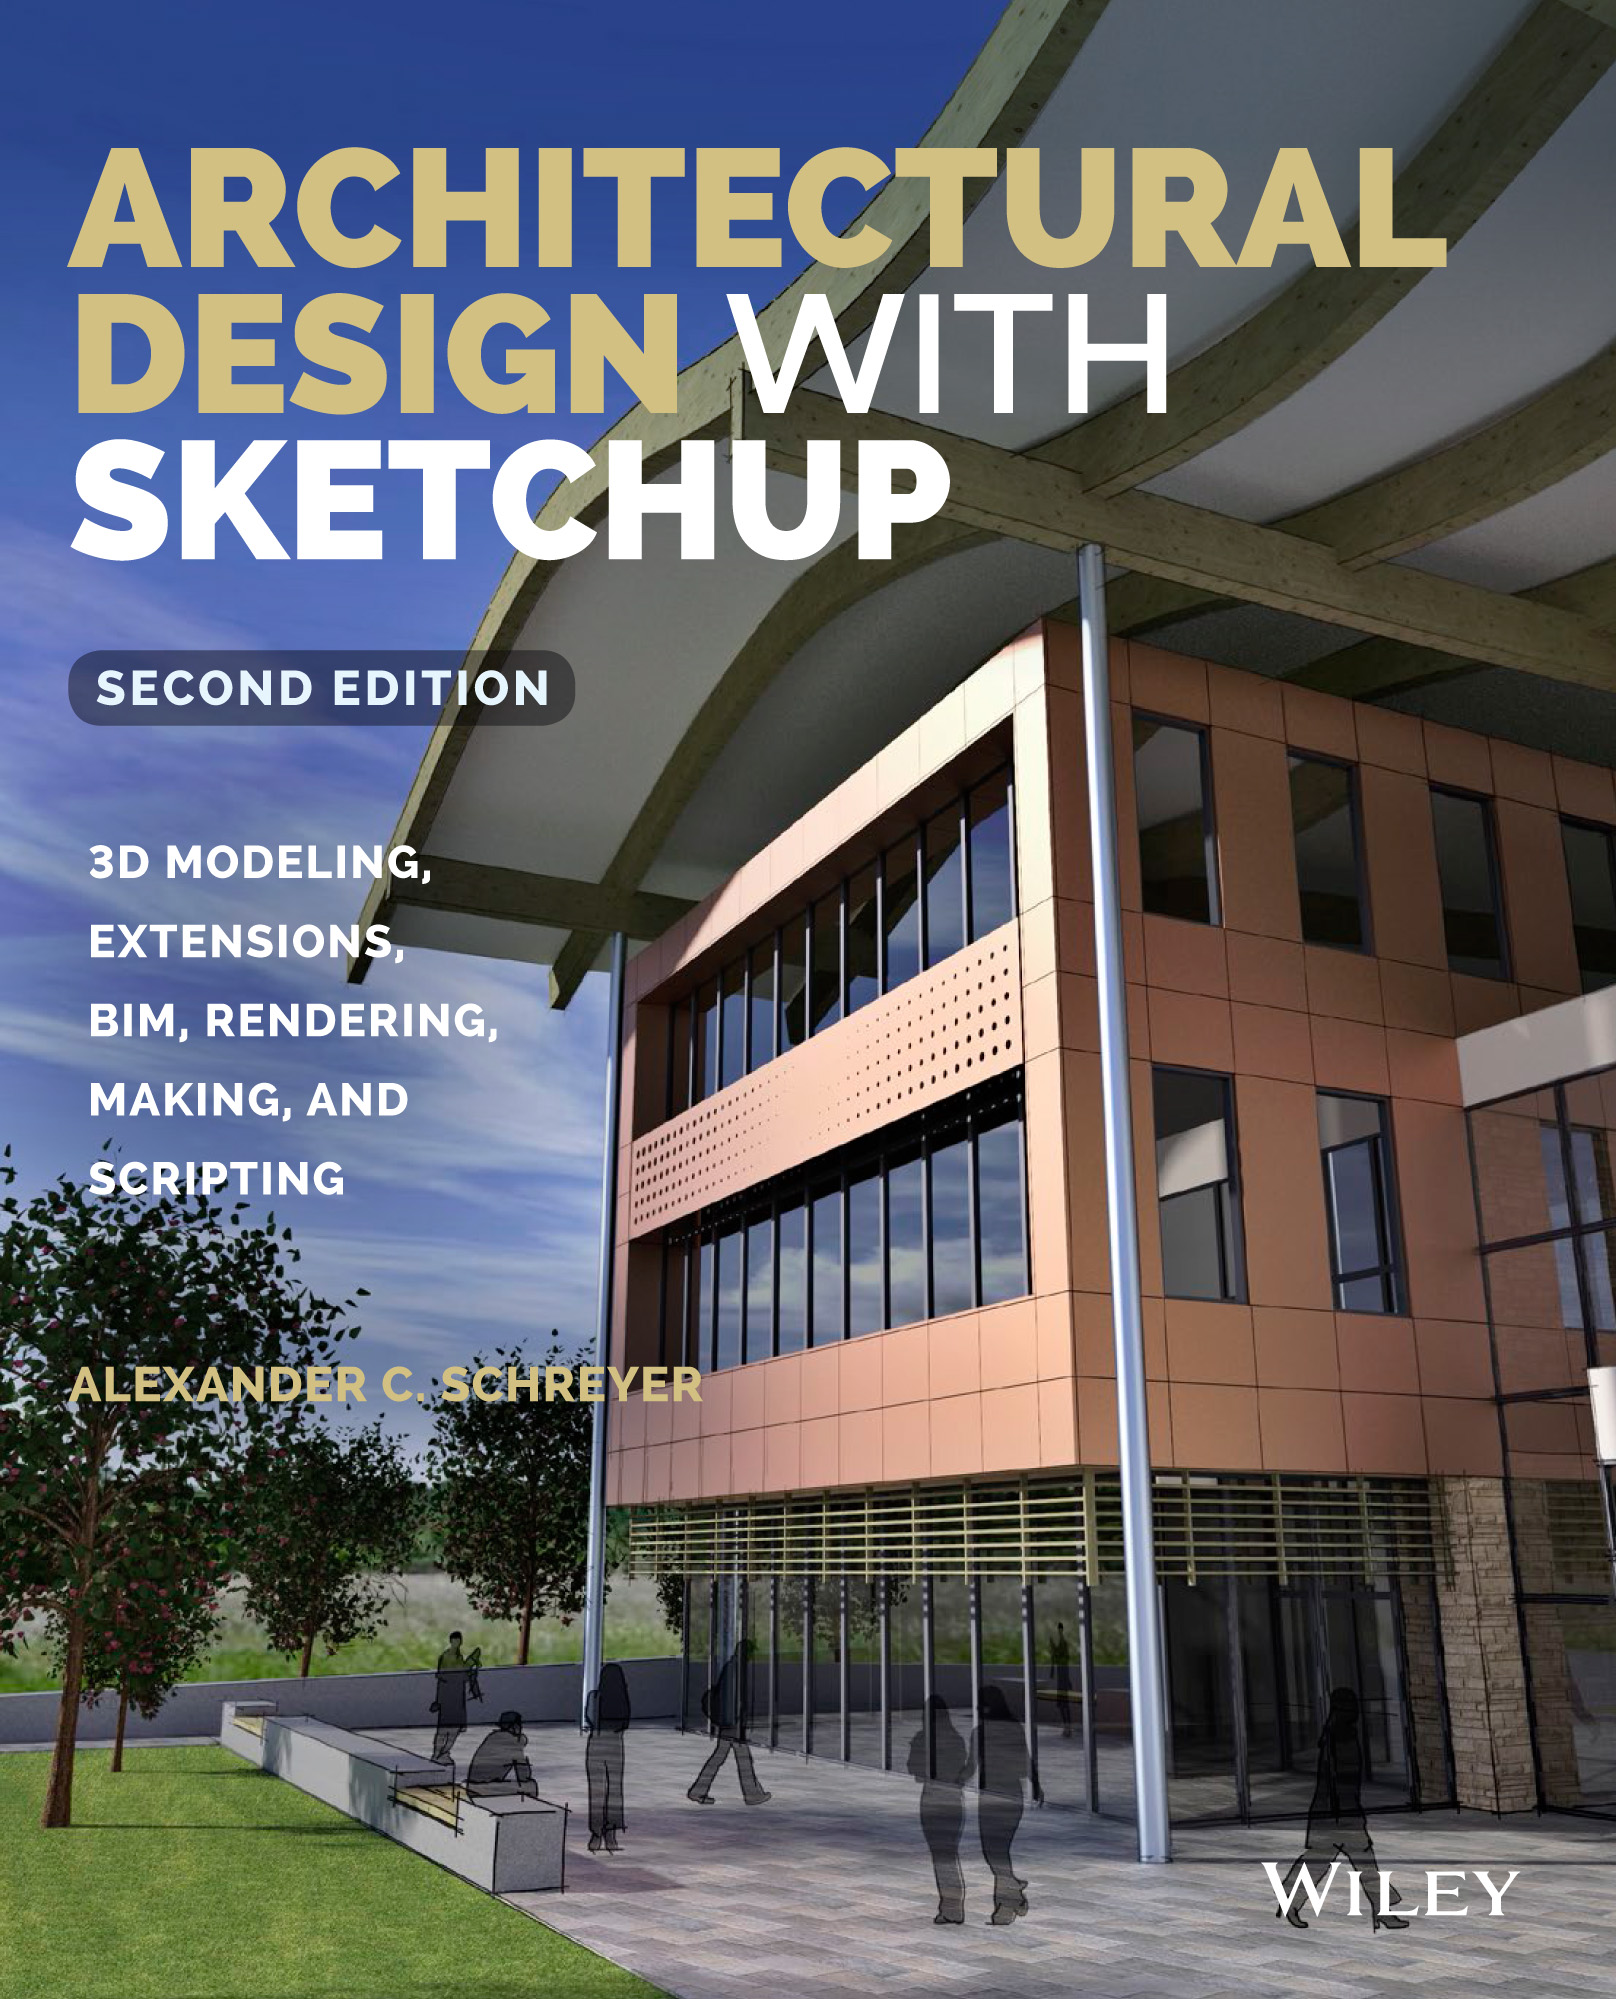 Architectural Design with SketchUp: 3D Modeling, Extensions, BIM, Rendering, Making, and Scripting (2nd Edition)